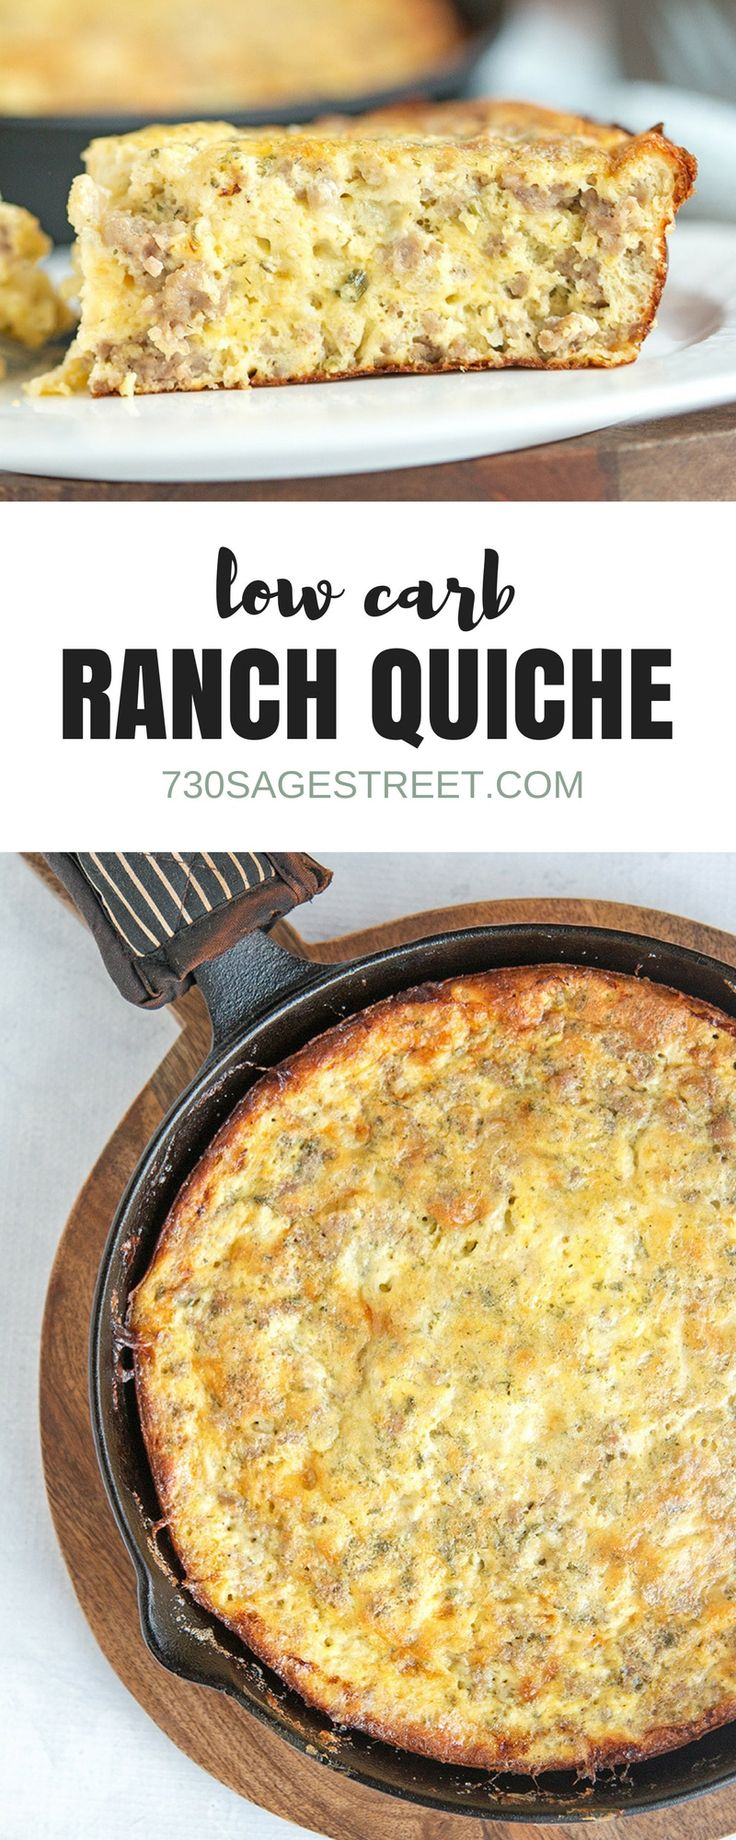 Low carb ranch breakfast quiche